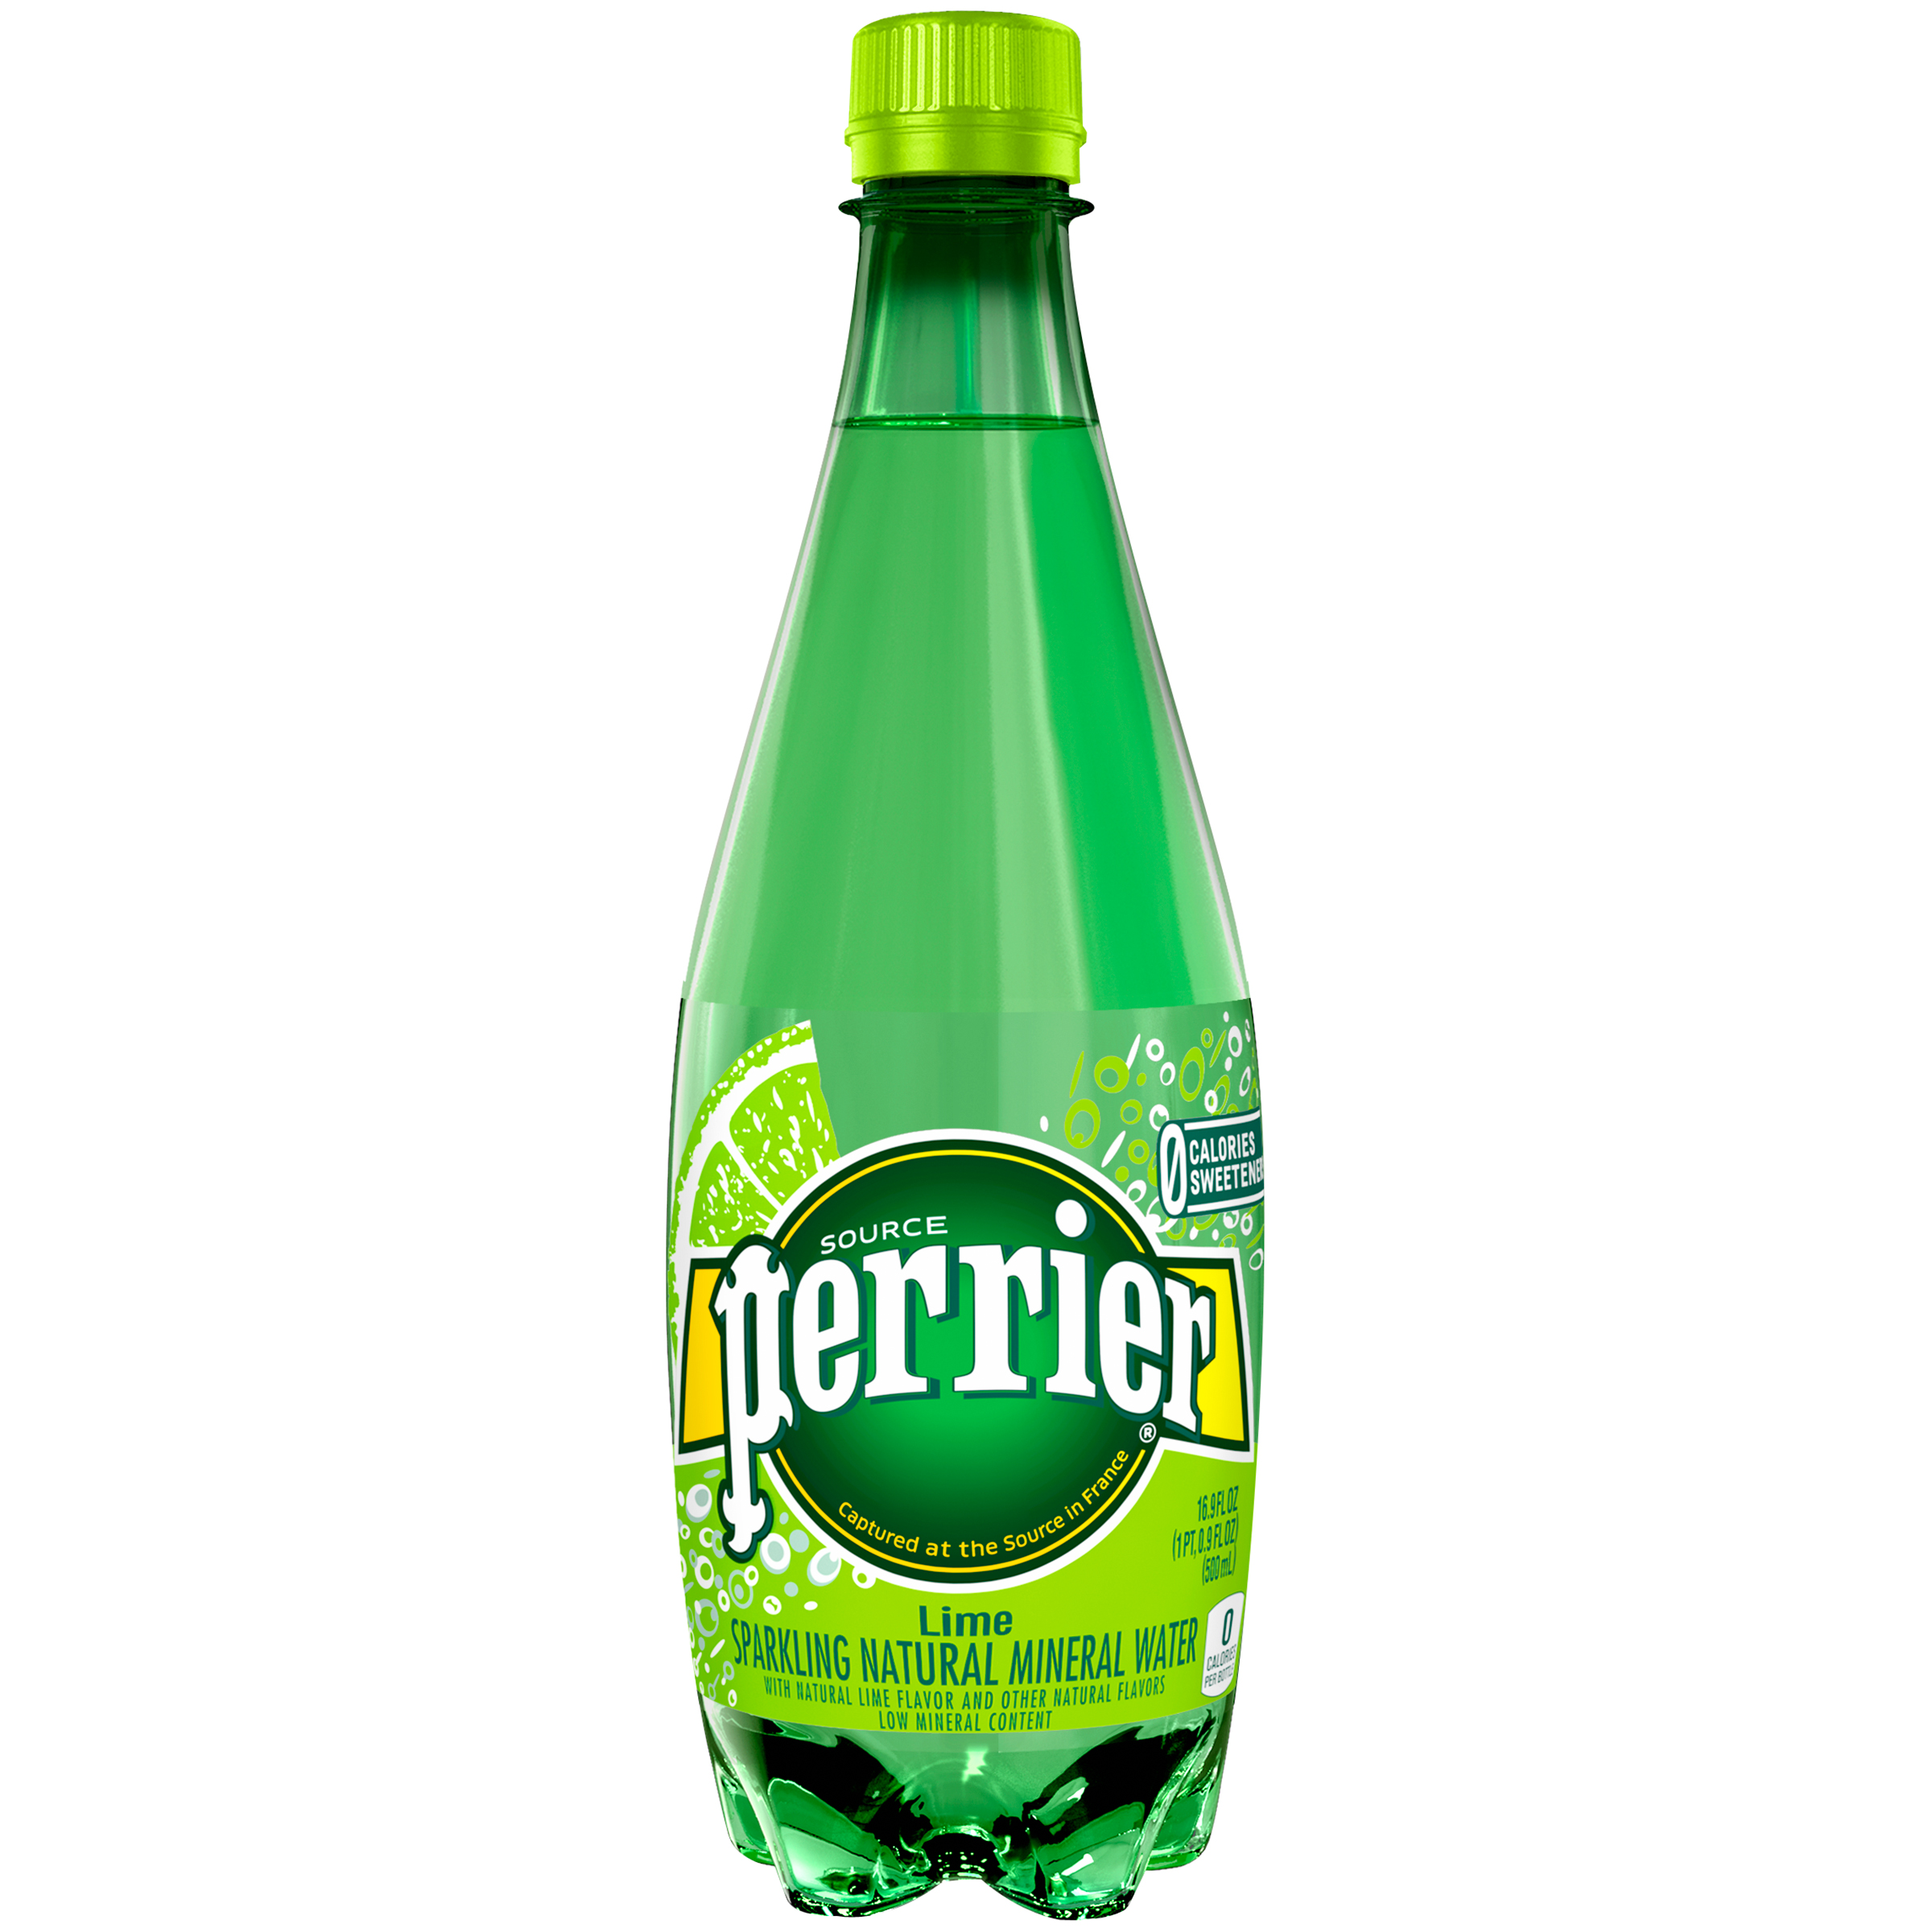 PERRIER Sparkling Natural Mineral Water, Lime 16.9-ounce plastic bottle